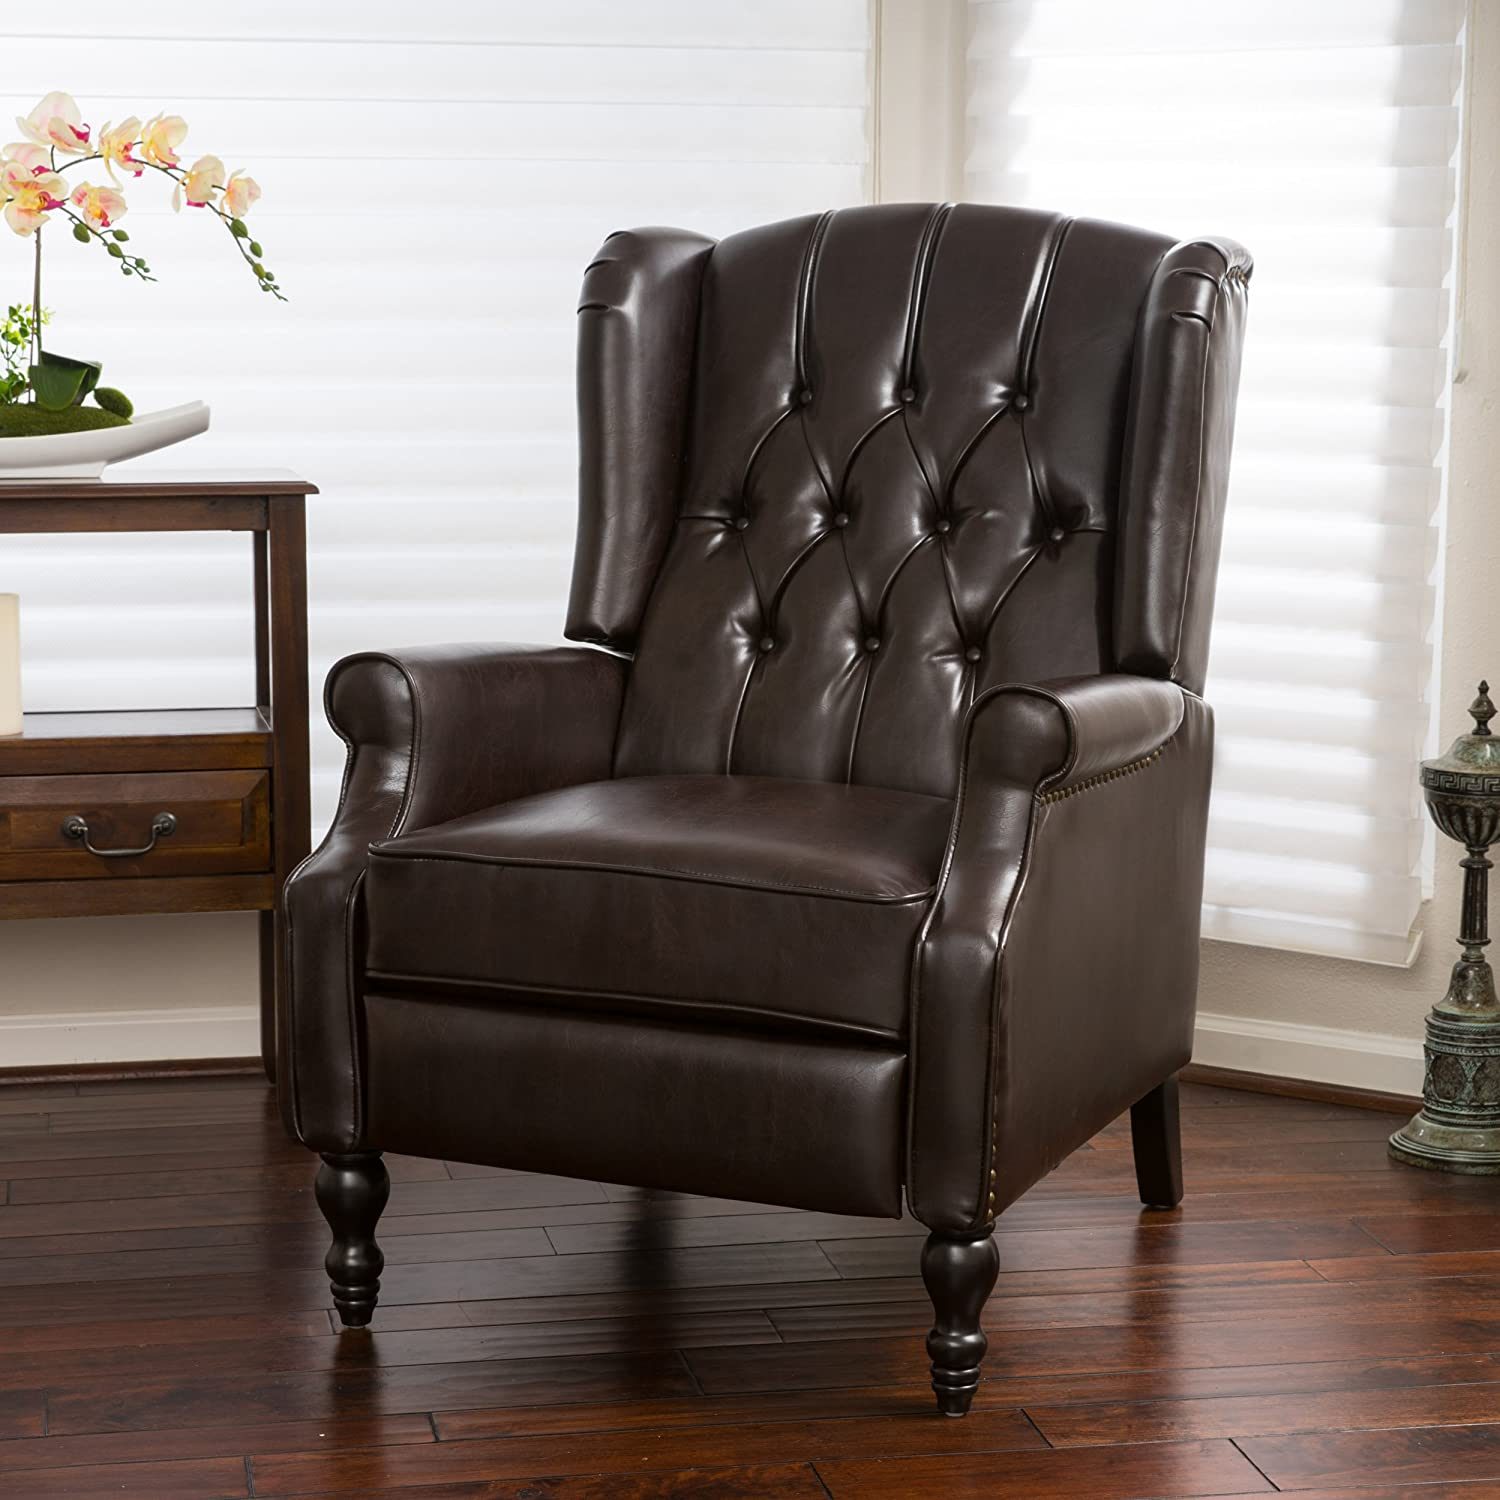 Elizabeth Tufted Brown Bonded Leather Recliner Arm Chair